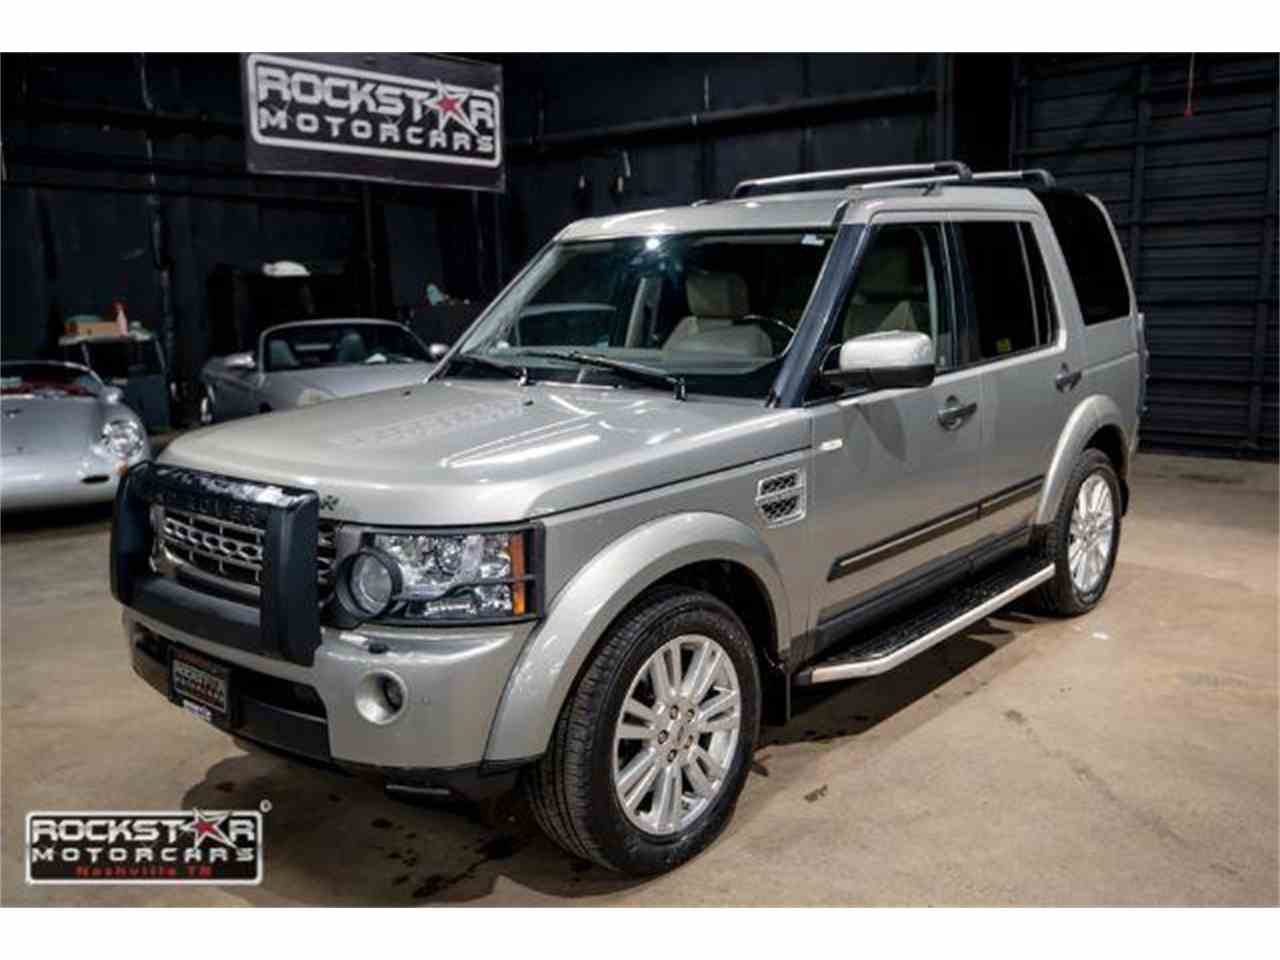 auto title land copart rover of lu landrover for carfinder lot auctions sale left certificate online hse nc on in en salvage raleigh white view